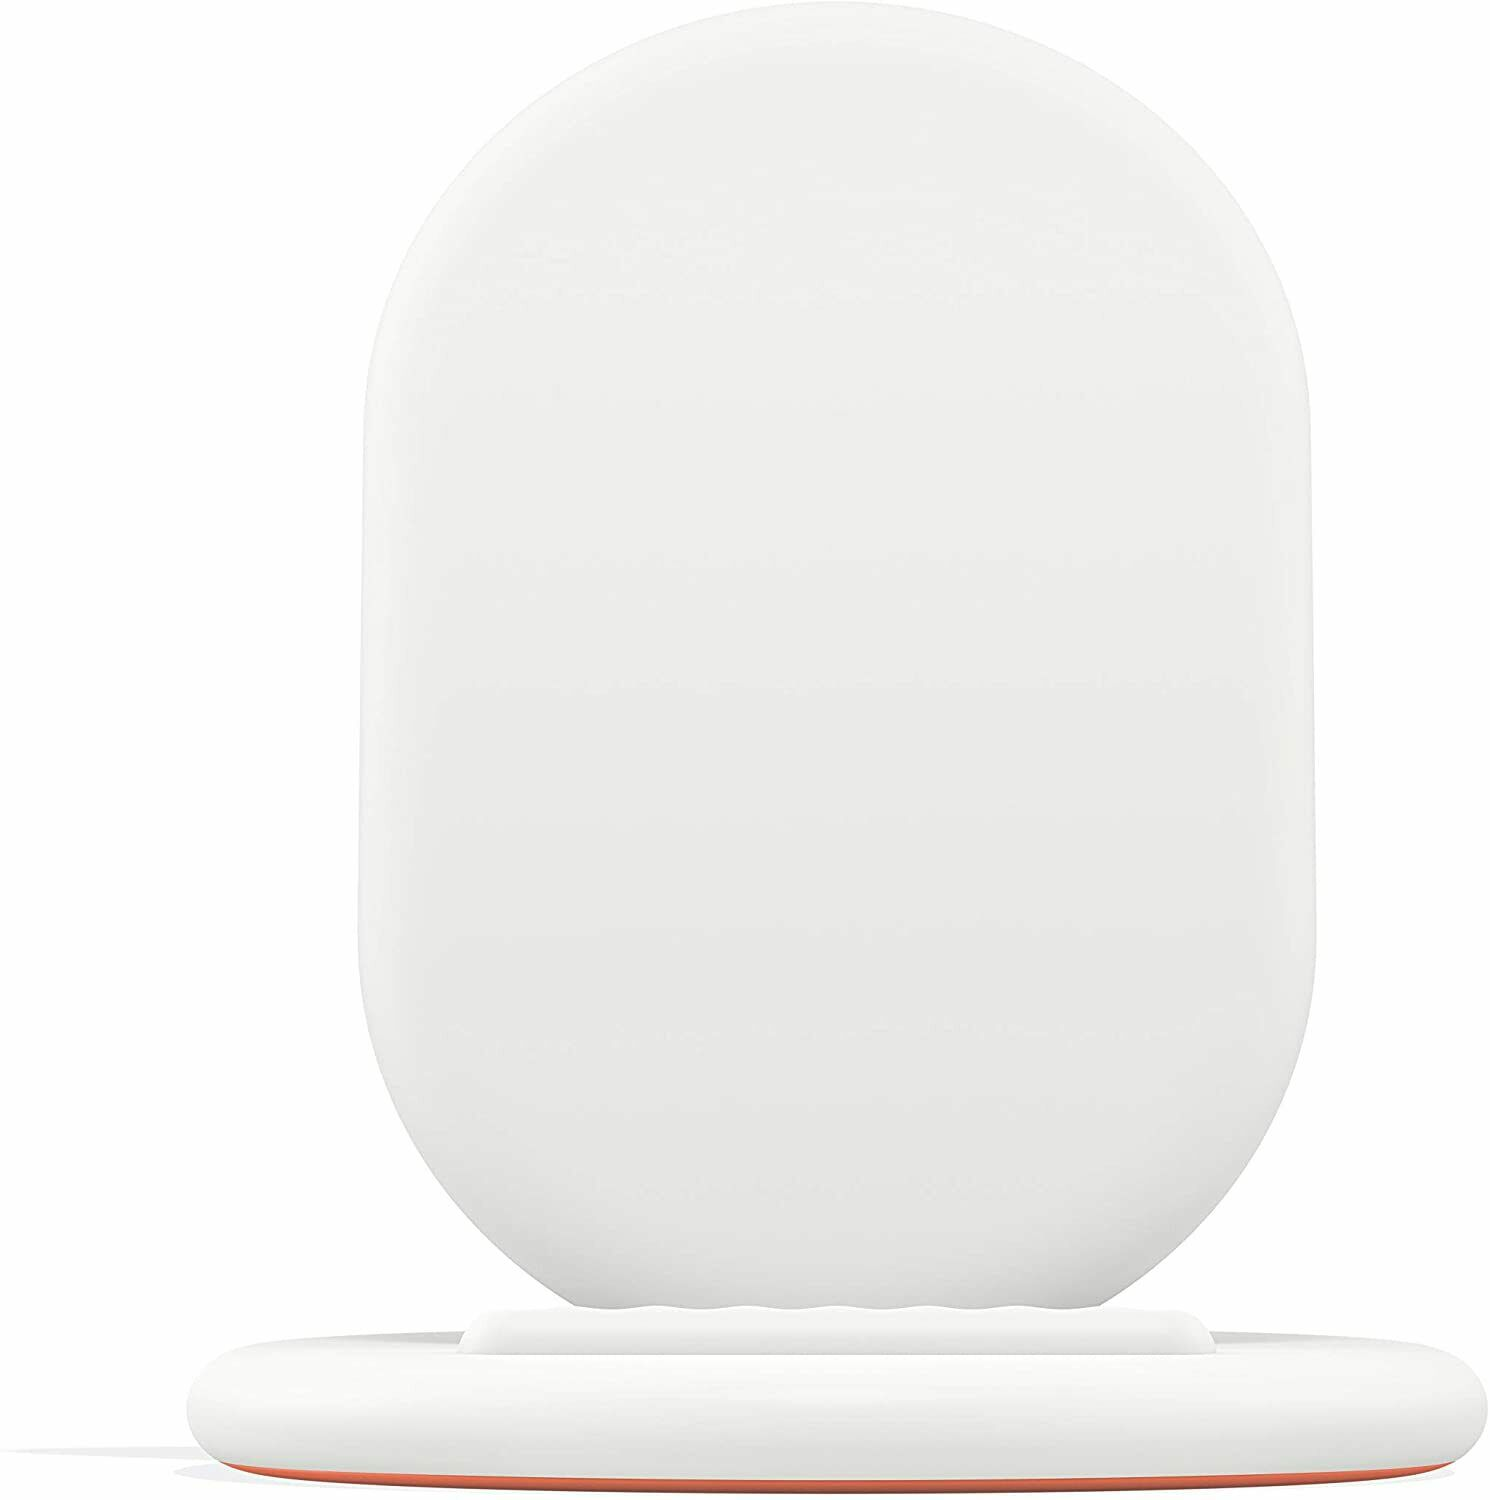 Google Wireless Charger And Stand for Pixel 3 and Pixel 3 XL – White G019C Cell Phone Accessories